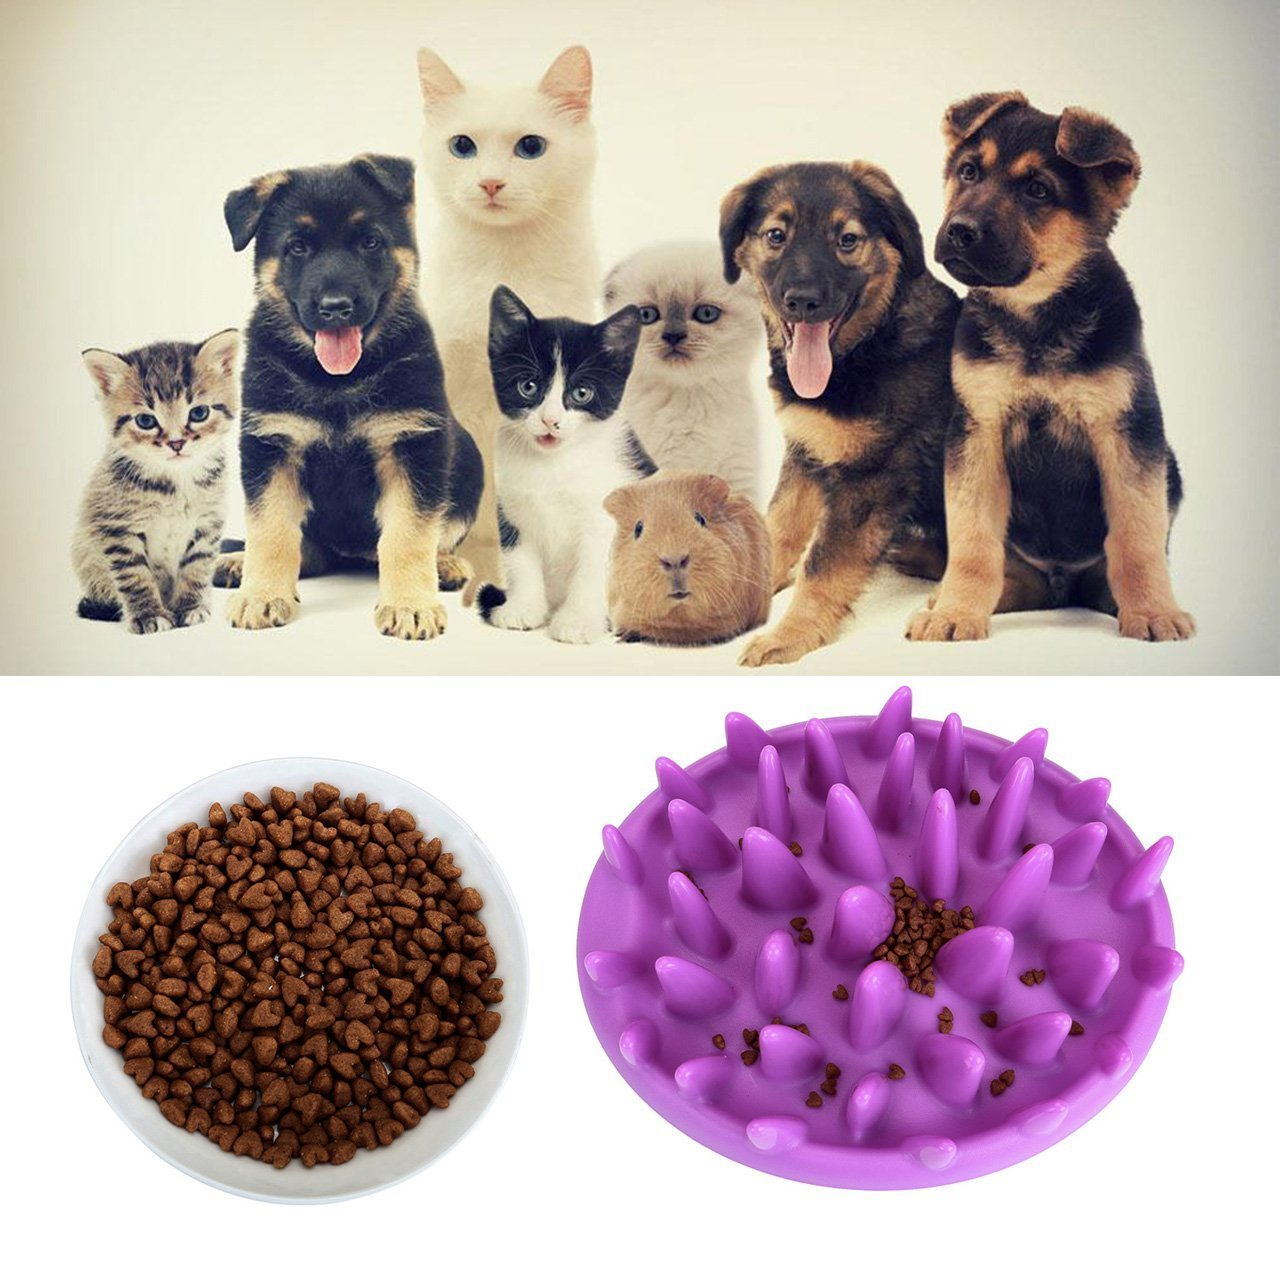 CozyCabin Dog Food Bowl Interactive IQ Non-Toxic Rubber Slow Feeder Toy Pet Food Feeder for Training Playing Chewing Tilly Shop